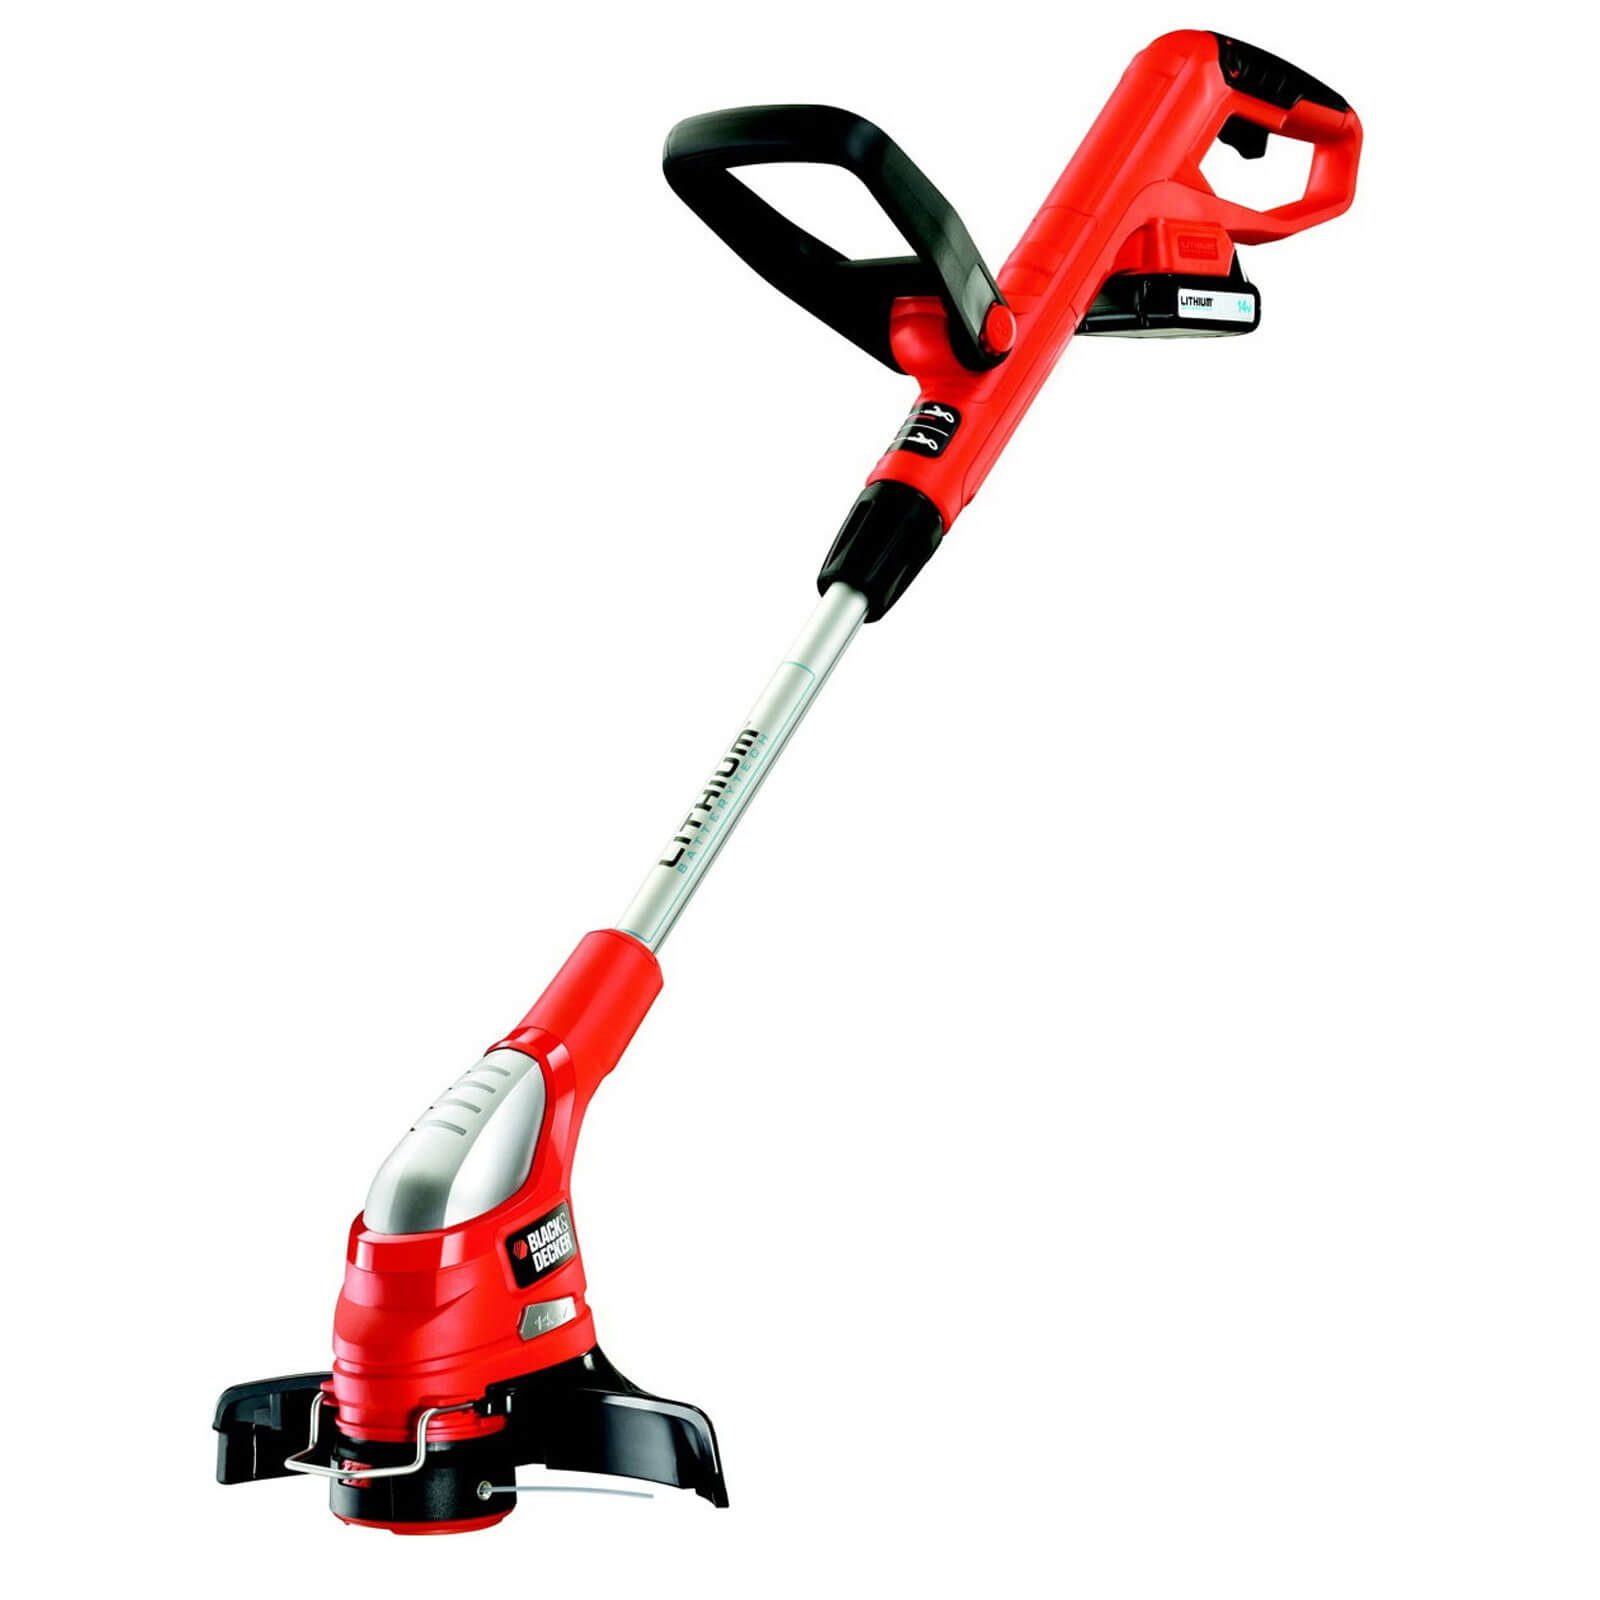 Black & Decker GLC1423L 14.4v Cordless Grass Trimmer with 1 Lithium Ion Battery 1.1ah